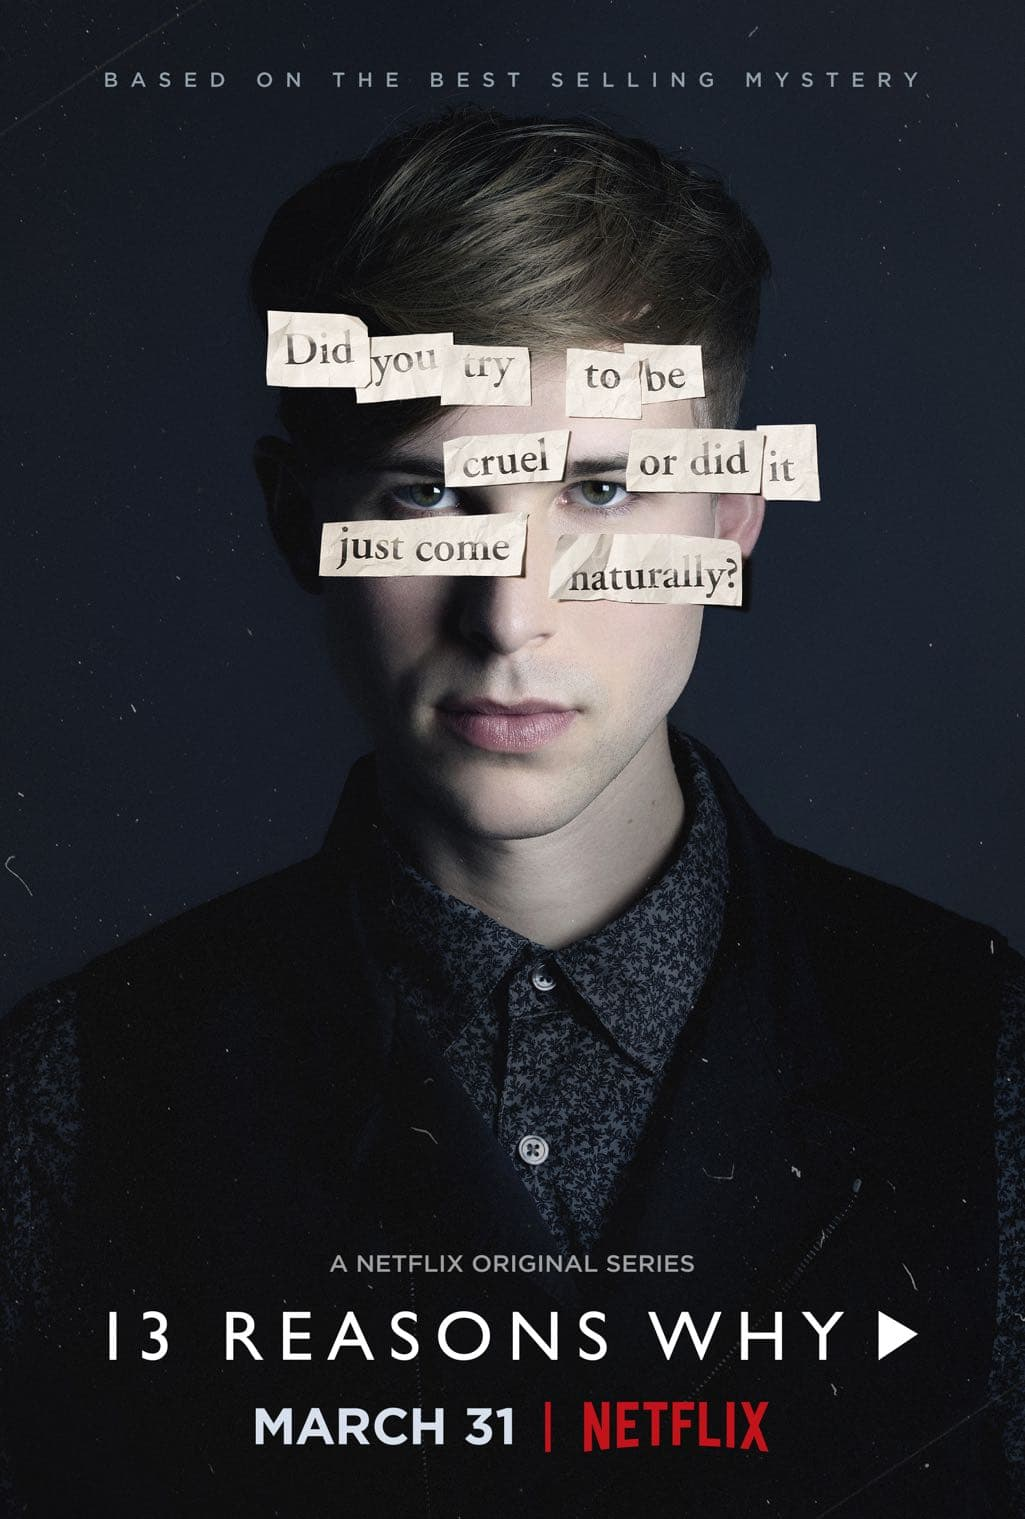 13 Reasons Why Character Poster Tommy Dorfman as Ryan Shaver